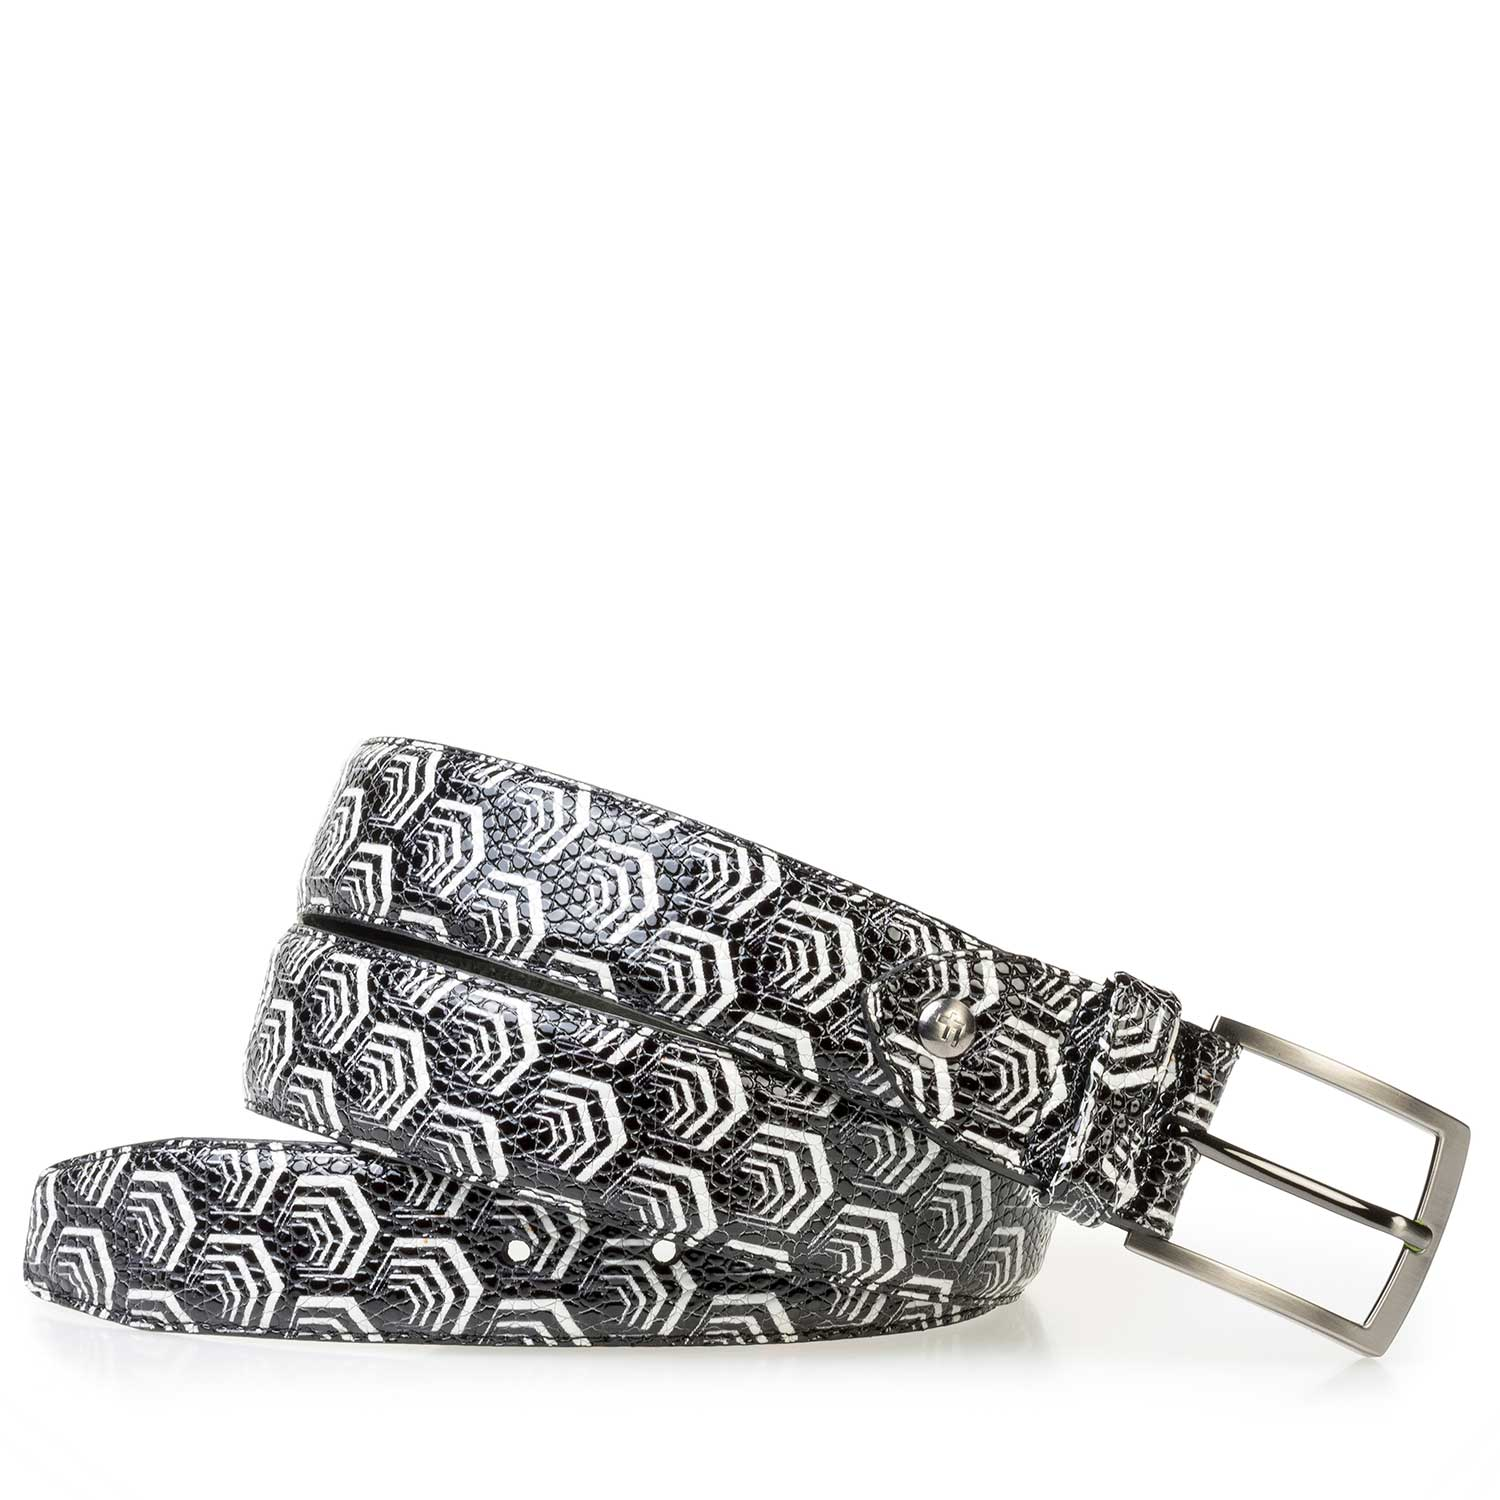 75200/11 - White calf leather belt with black pattern